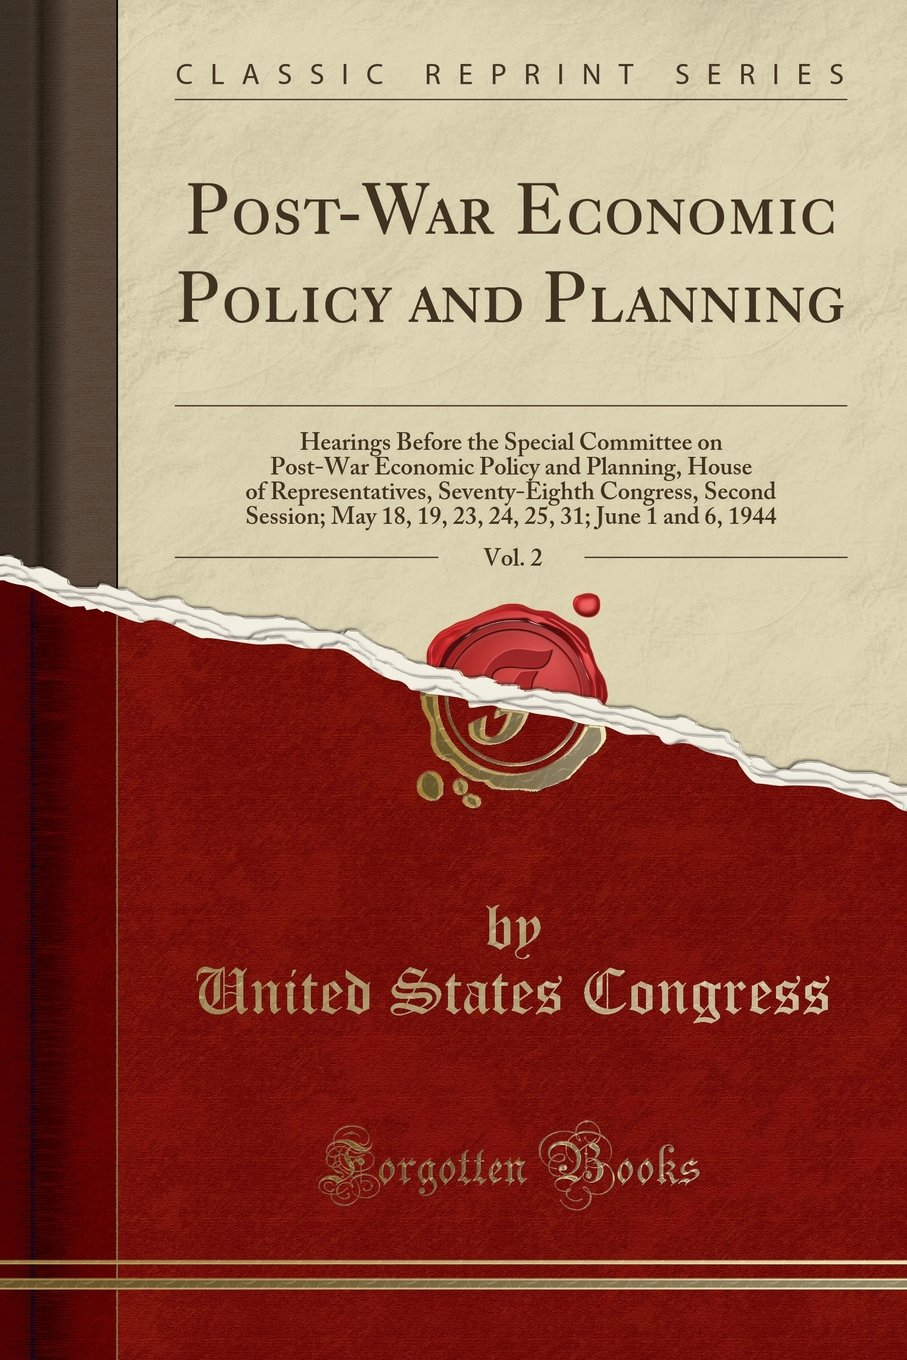 Post-War Economic Policy and Planning, Vol. 2: Hearings Before the Special Committee on Post-War Economic Policy and Planning, House of 18, 19, 23, 24, 25, 31; June 1 and 6, 1944 pdf